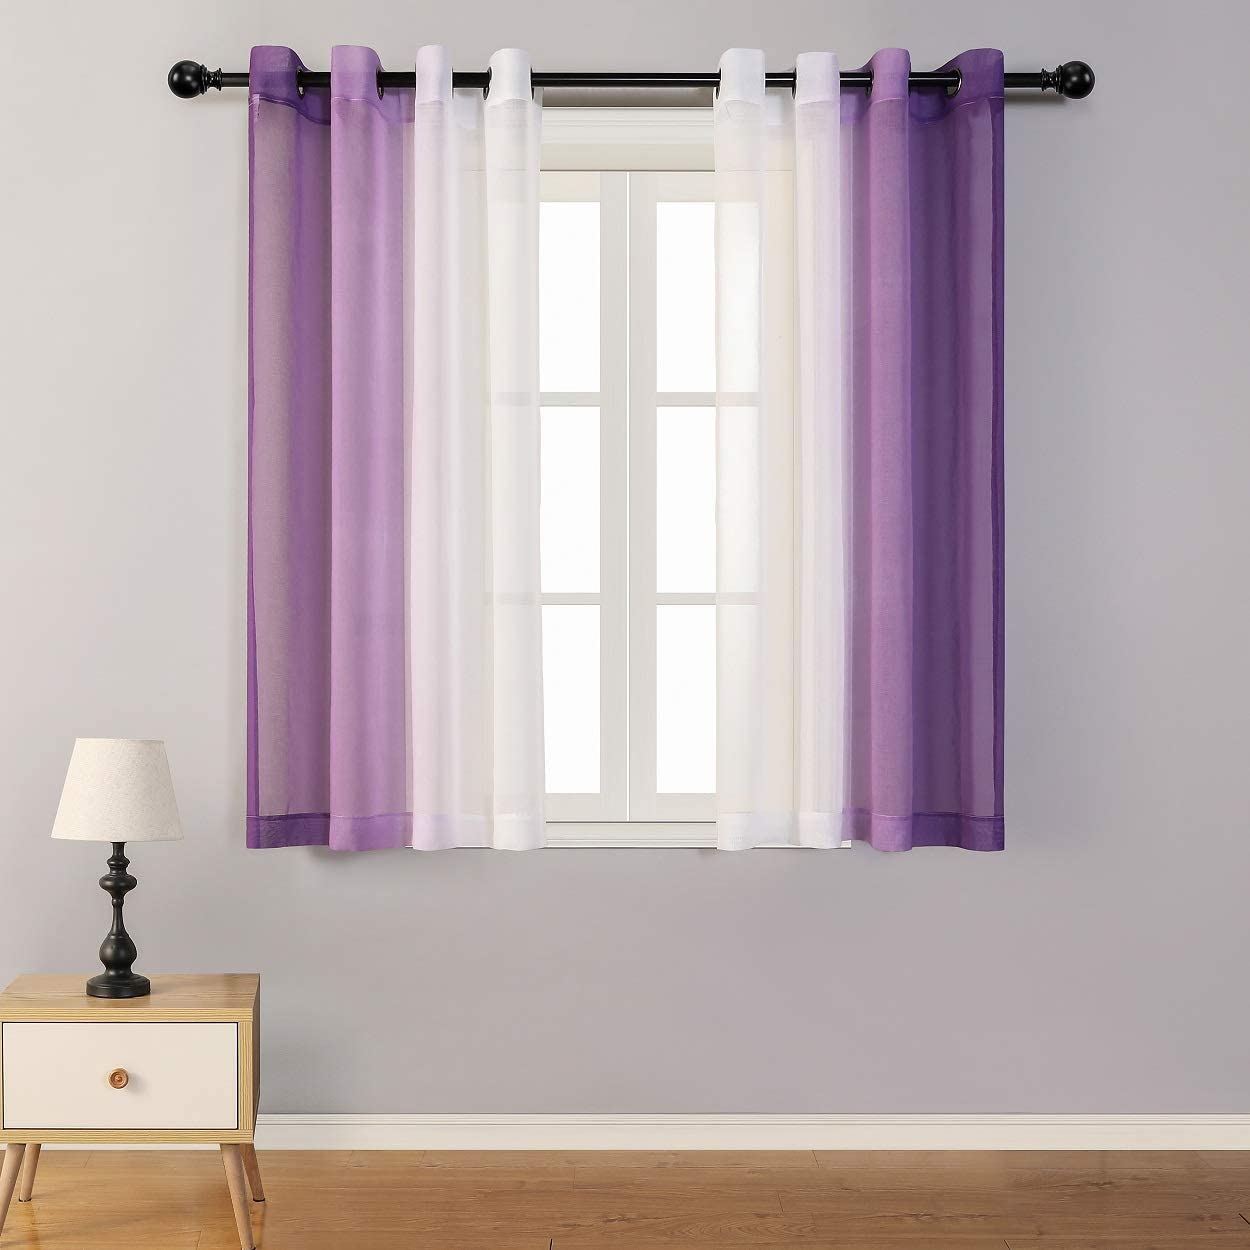 MYSKY HOME Ombre Purple and White Sheer Curtains for Bedroom Set of 2 Panels Grommets Linen Look Modern Decorative Semi Window Sheer Drapes Elegant Curtains for Living Room Girls 63 Inch Length